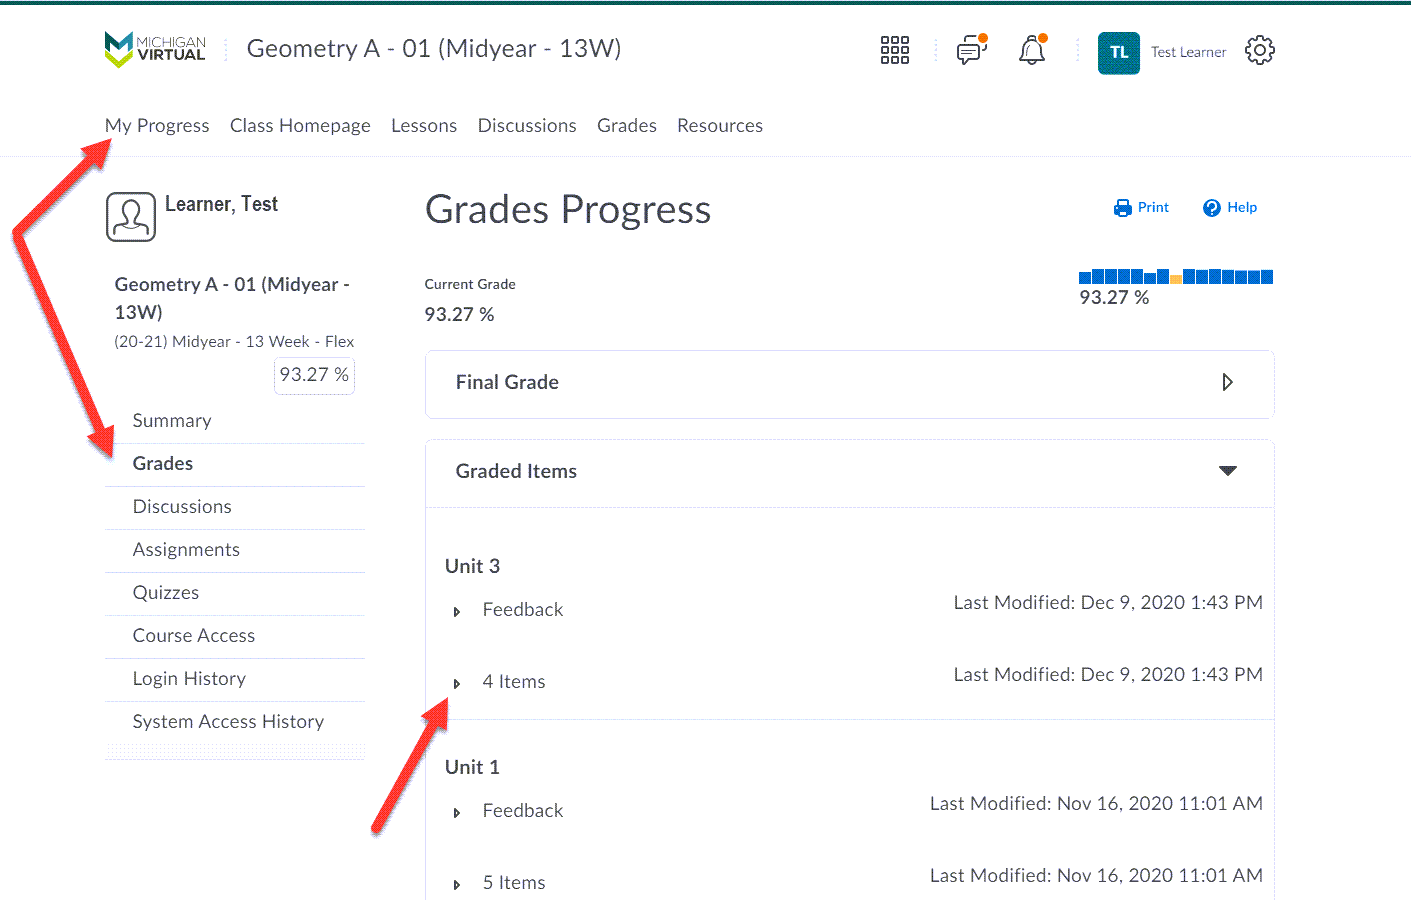 The Grades Progress page is displayed showing arrows pointing to My Progress in the navbar, the Grades option in the left menu and another pointing to the 4 Items drop-down within the Unit 3 Graded Items list.